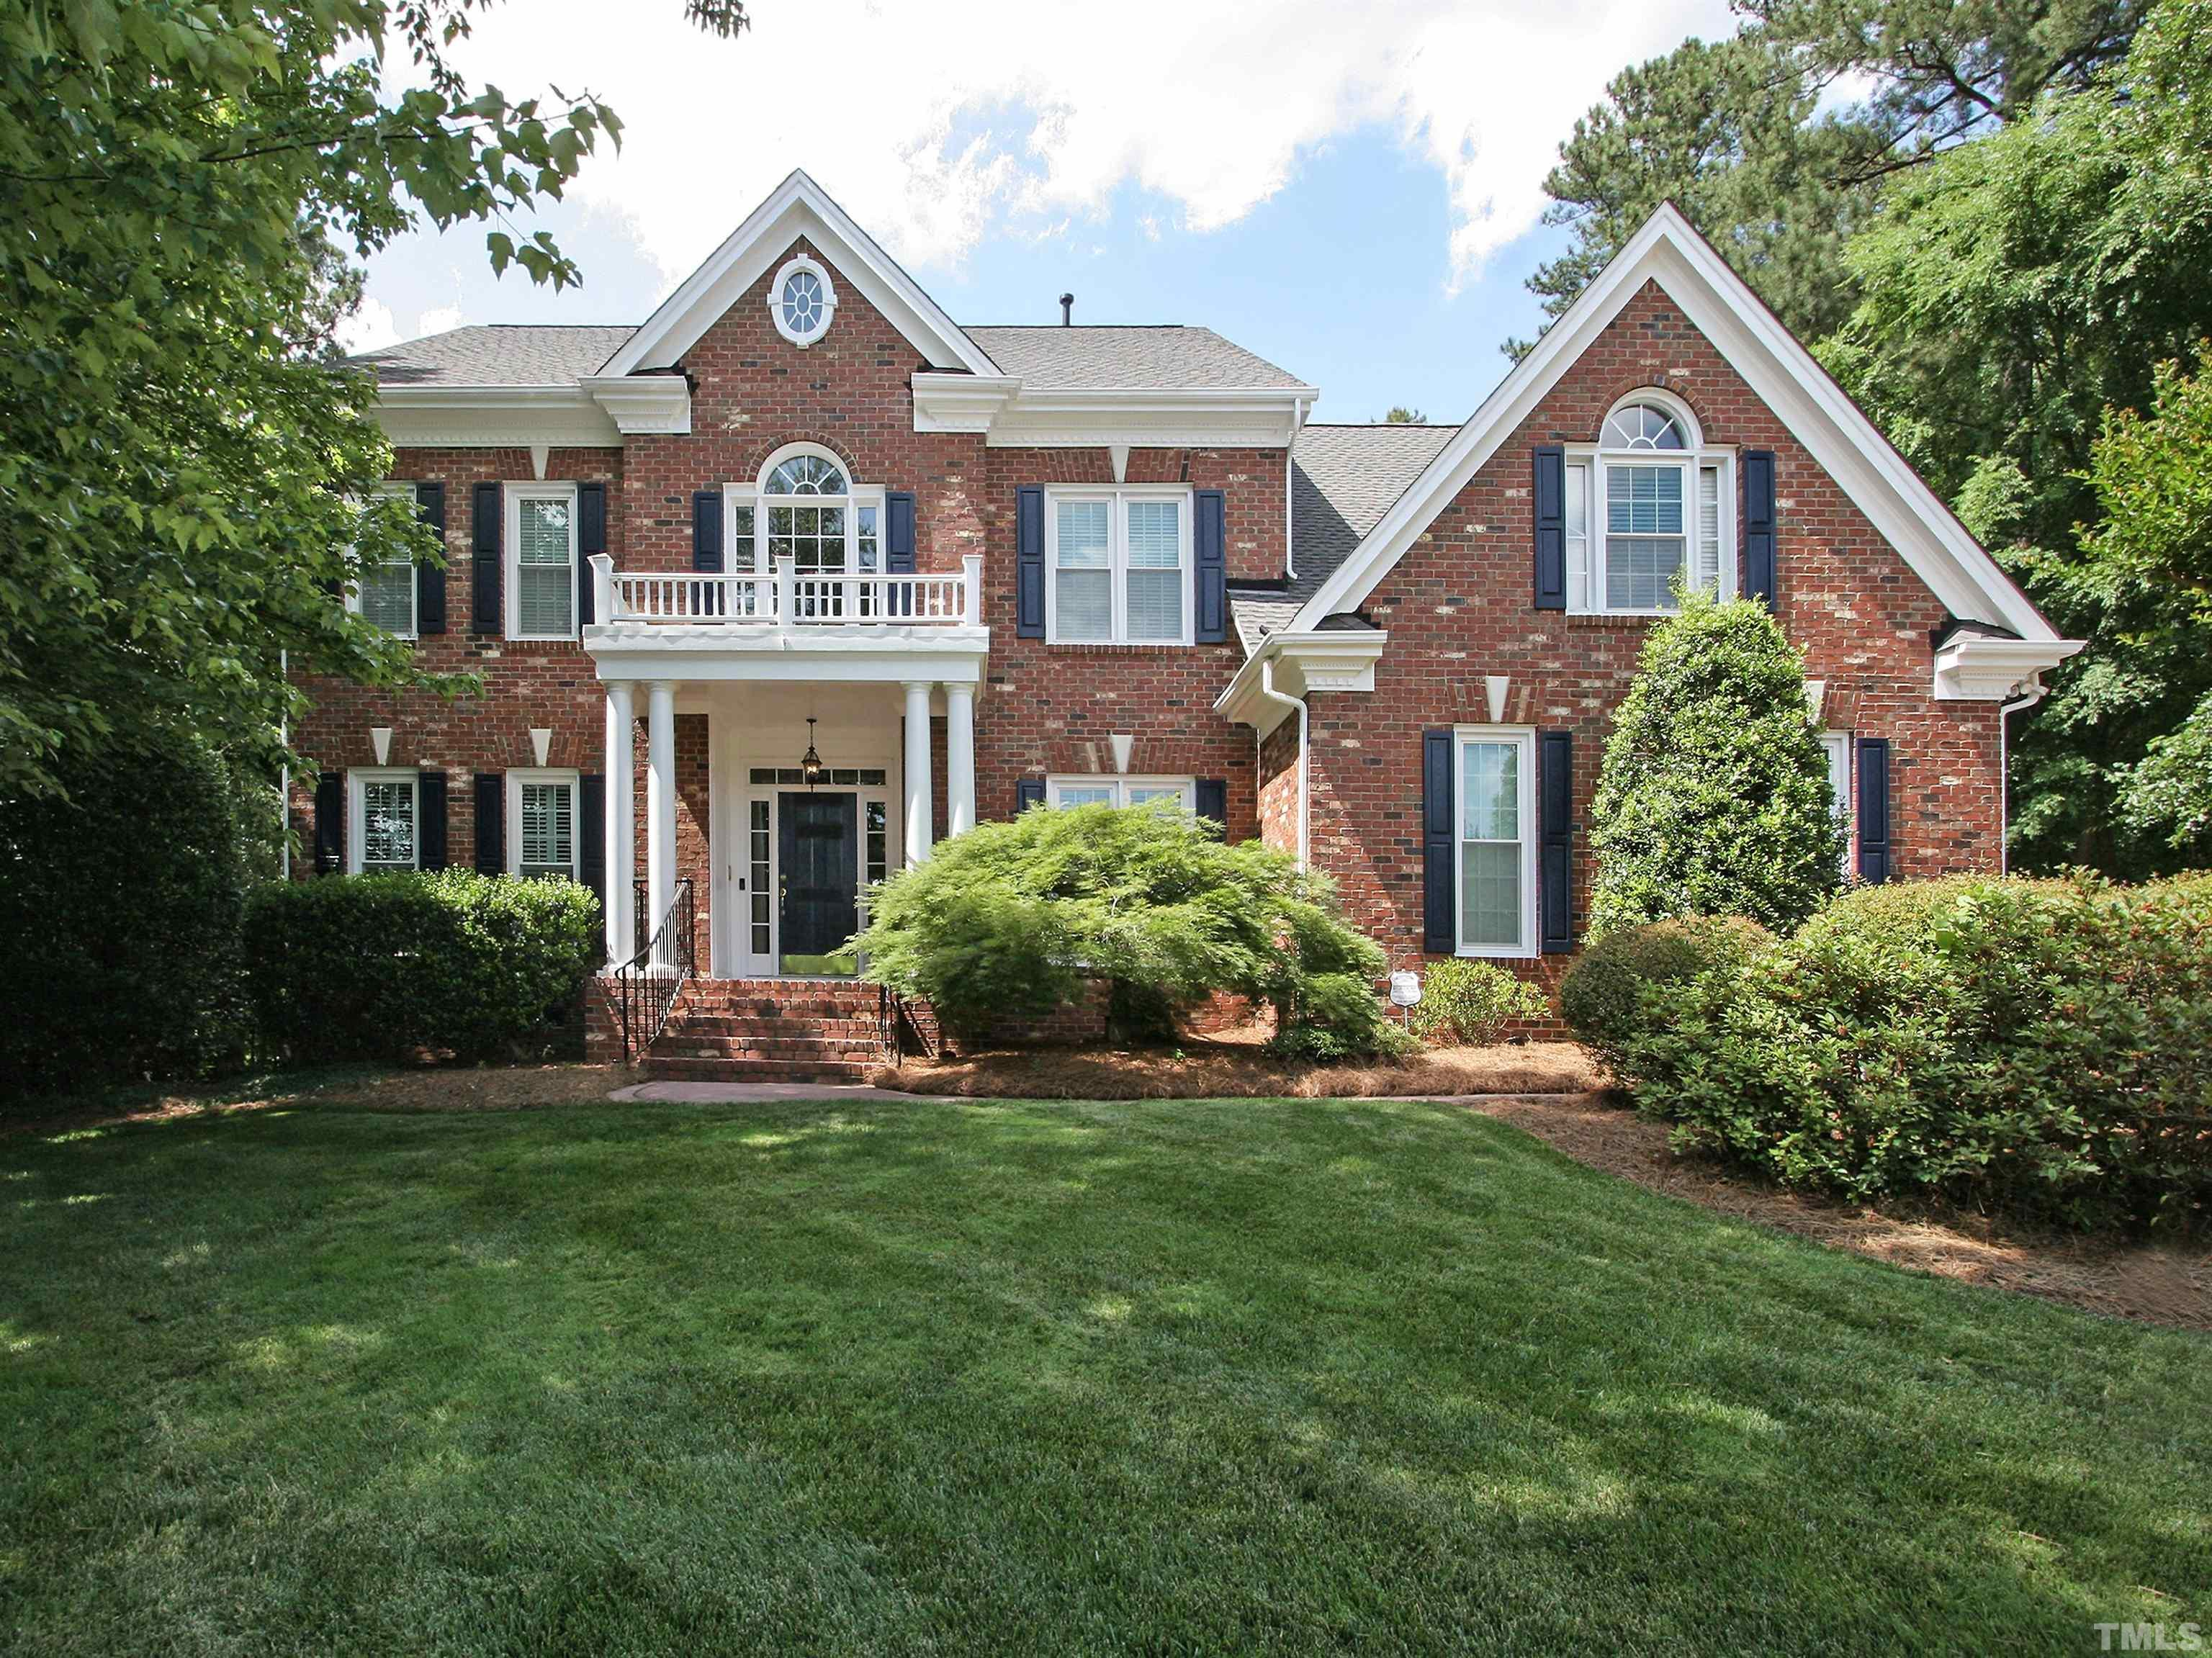 Spectacular 4-sides brick home in sought-after Weston Estates. Large lot with Impeccable landscaping. Gourmet kitchen with large island. Family room plus two home offices (or living rooms), formal dining room plus breakfast room, screened porch, deck, and patio. Awesome Cary/Morrisville location with easy access to NC54, I-40, and NC540/I-540. Close to Lake Crabtree County Park, Crabtree Creek Greenway, Cedar Fork District Park, RTP, RDU. Nearby Park West Village has restaurants, shopping, movie theater.